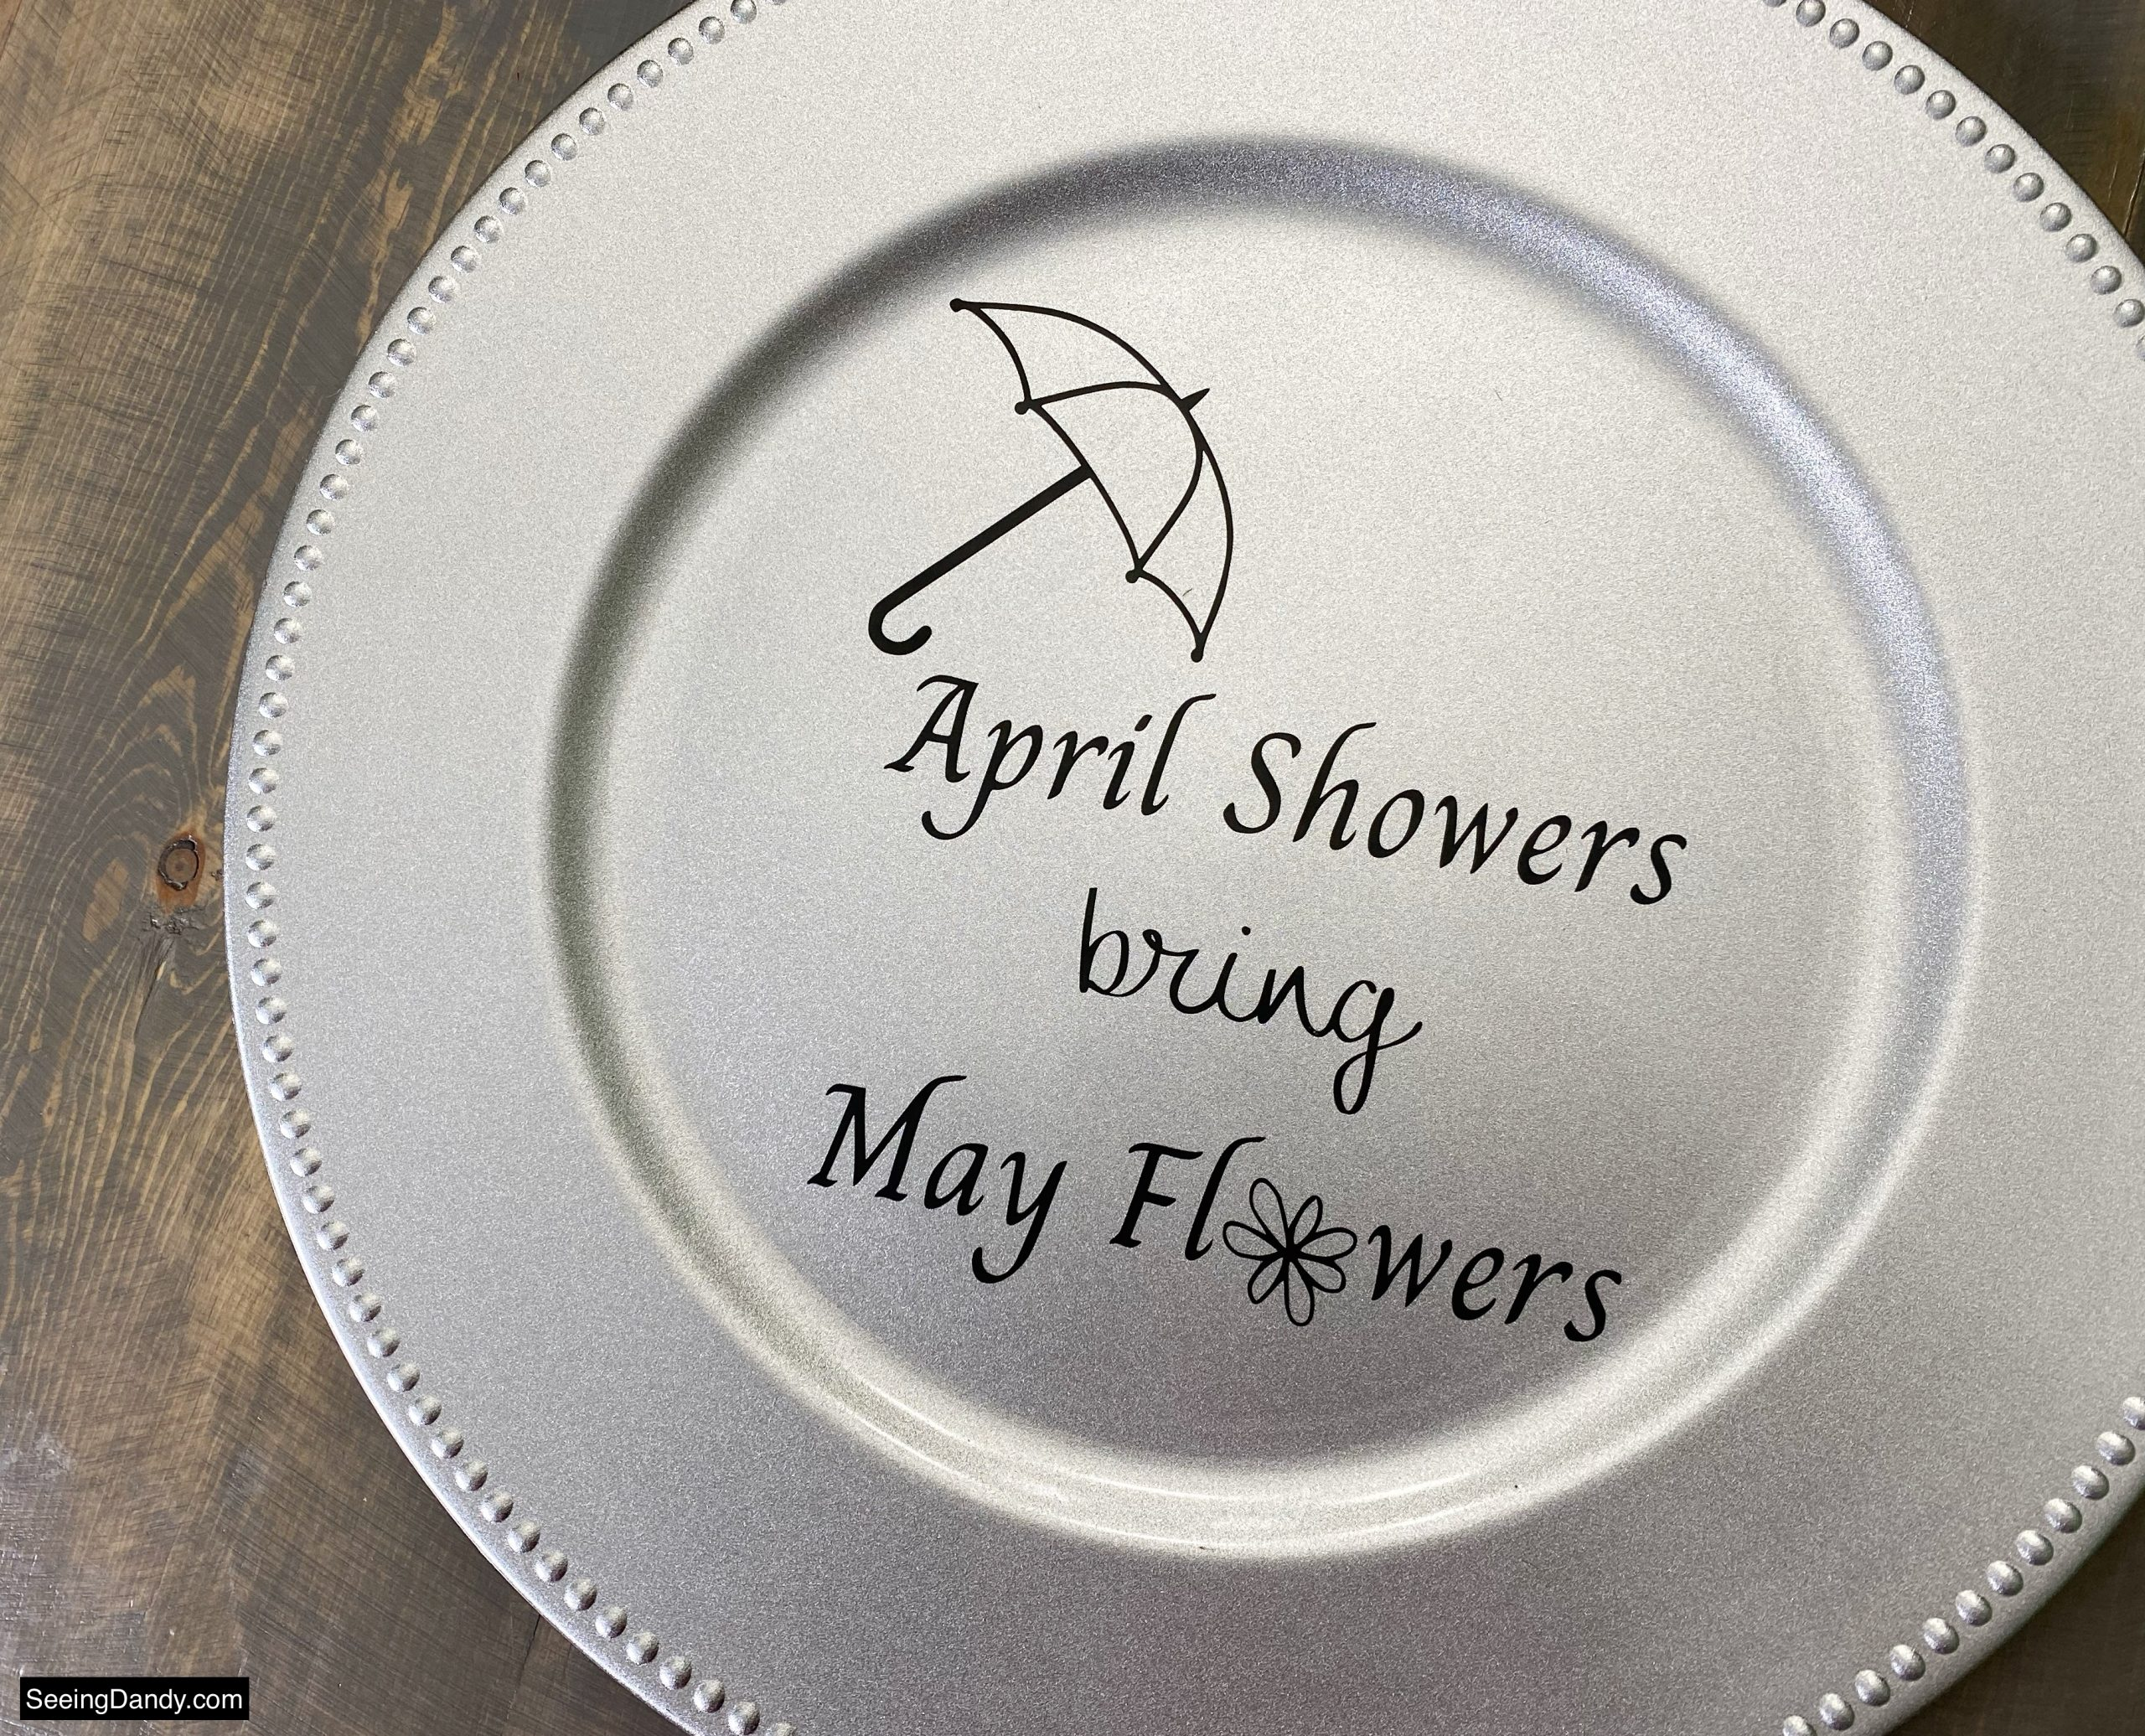 april showers bring may flowers svg file, free svg file, vinyl craft, umbrella svg file, free printables, silver dollar tree plastic charger plate, dollar tree craft ideas, farmhouse table, easy crafts